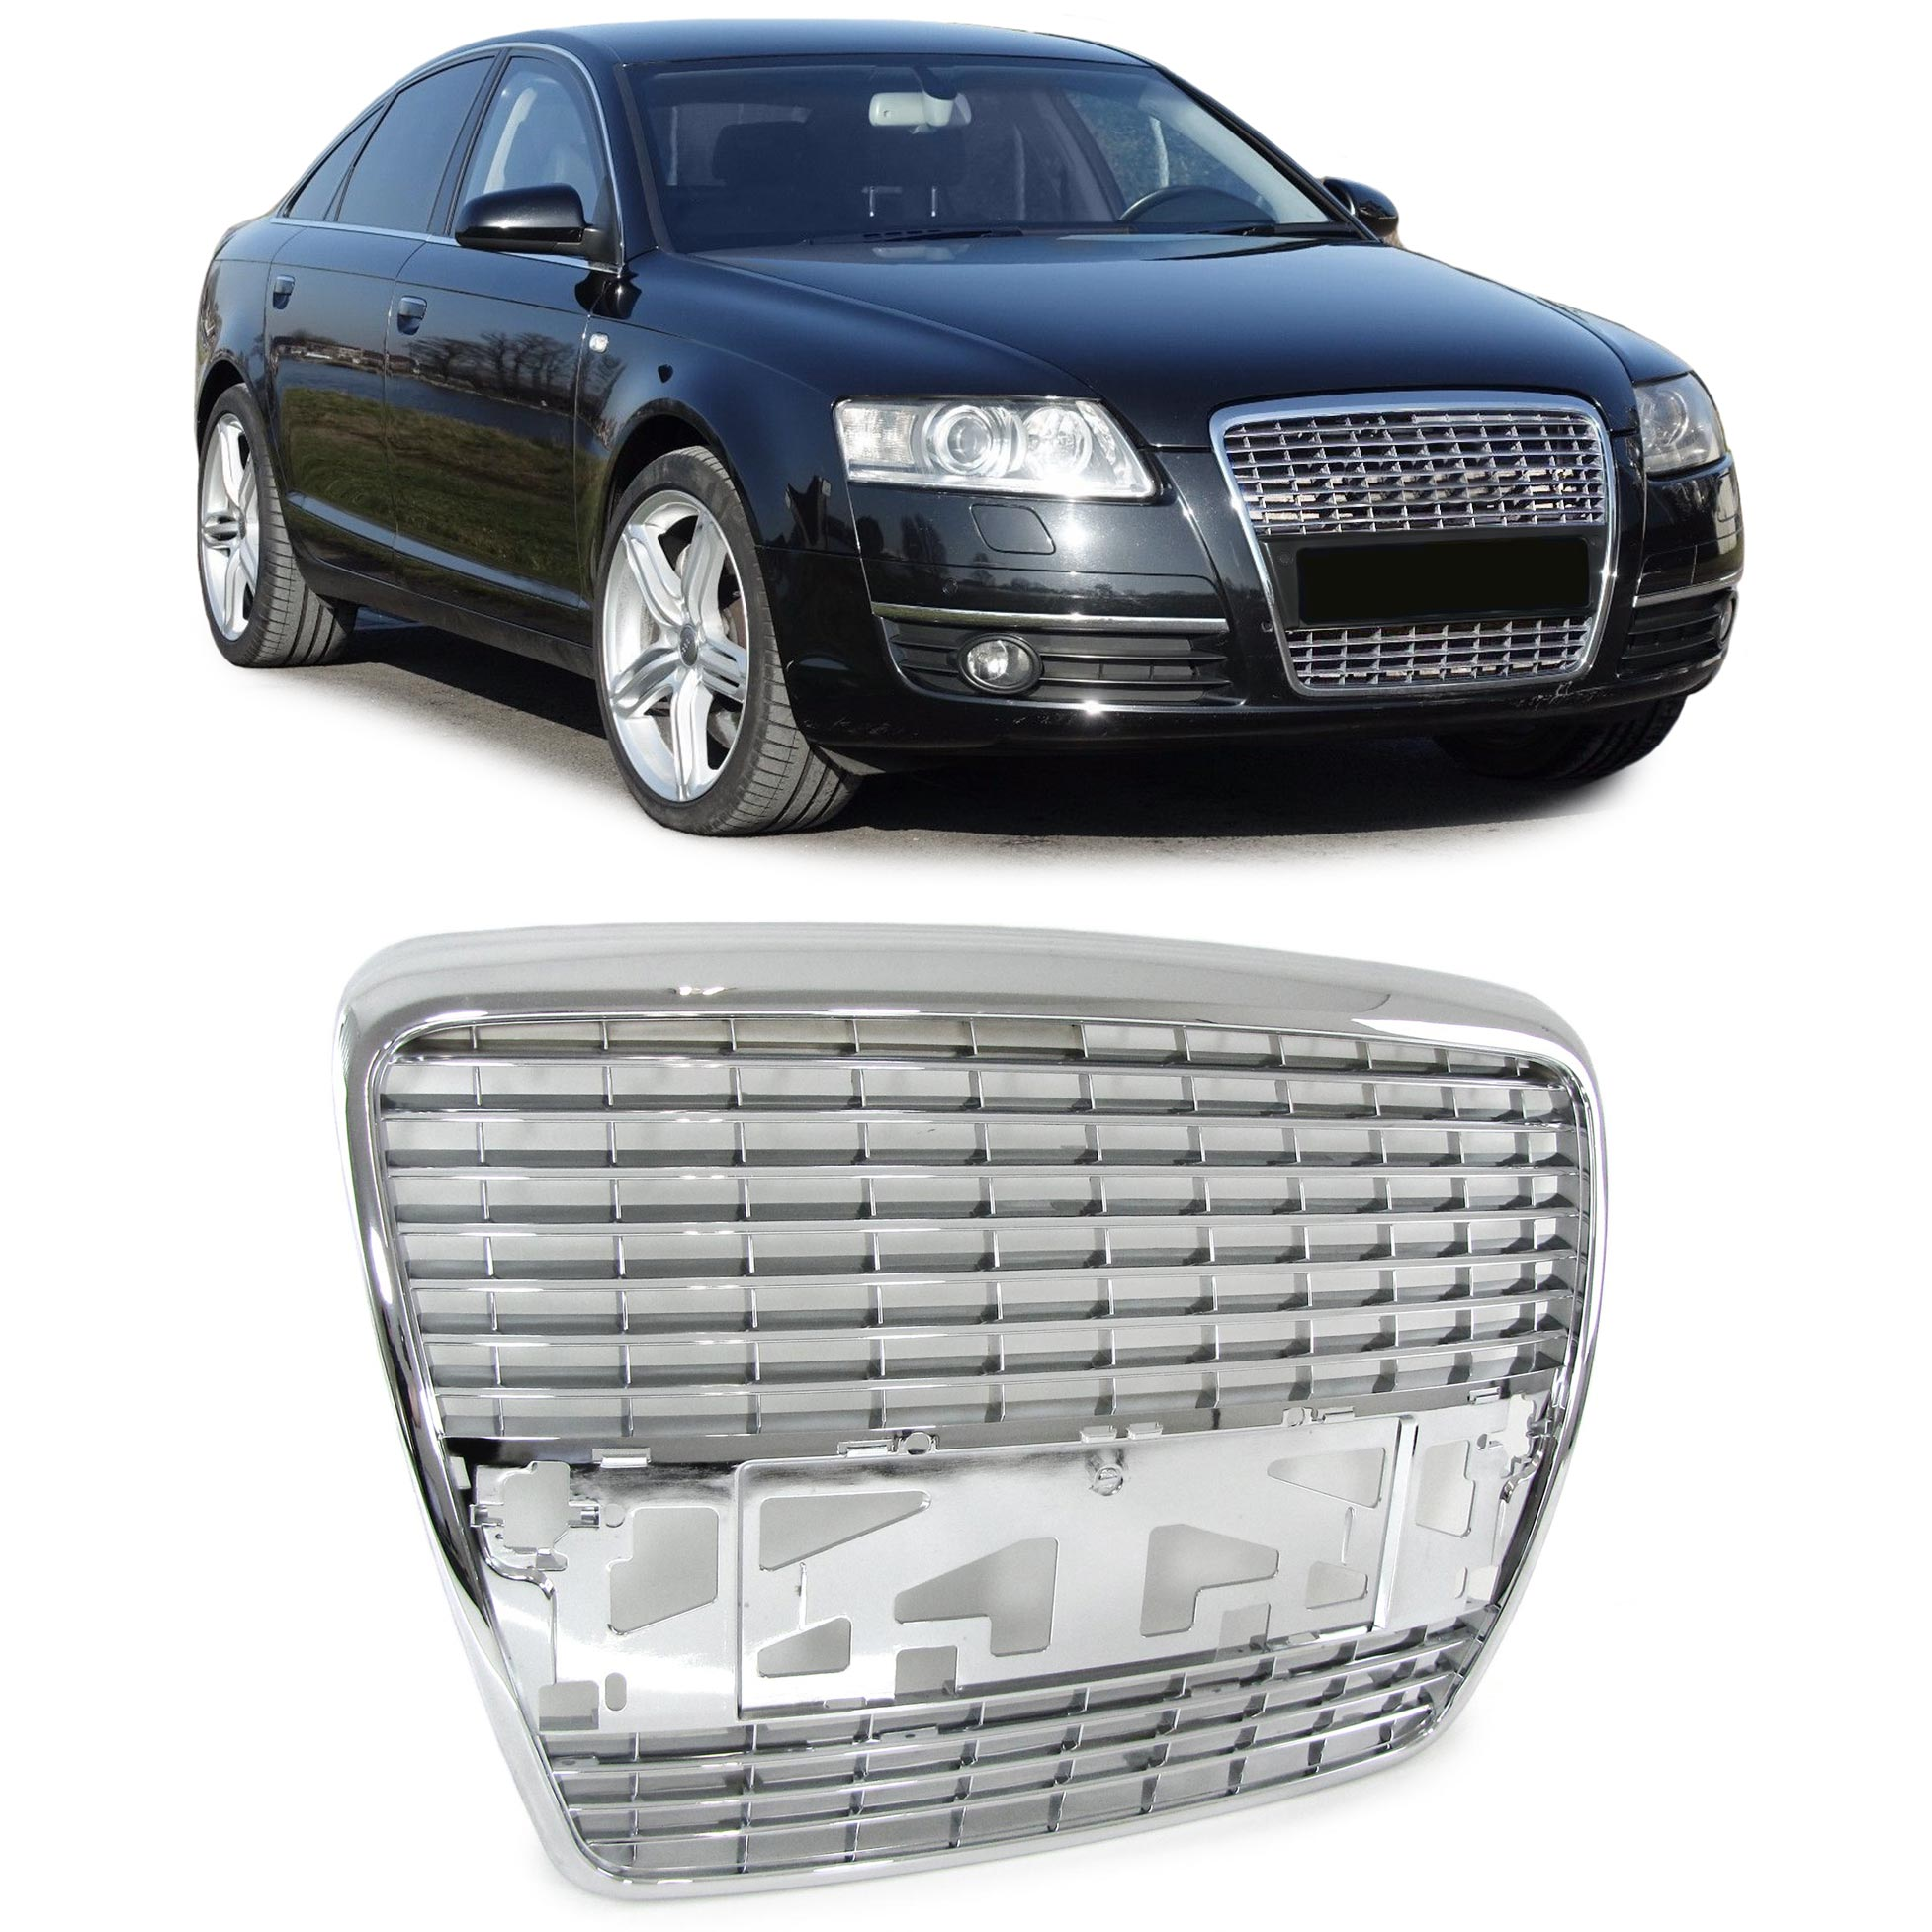 Audi A6 C6 4G Limo Avant 04-11 Front Grill Without Badge